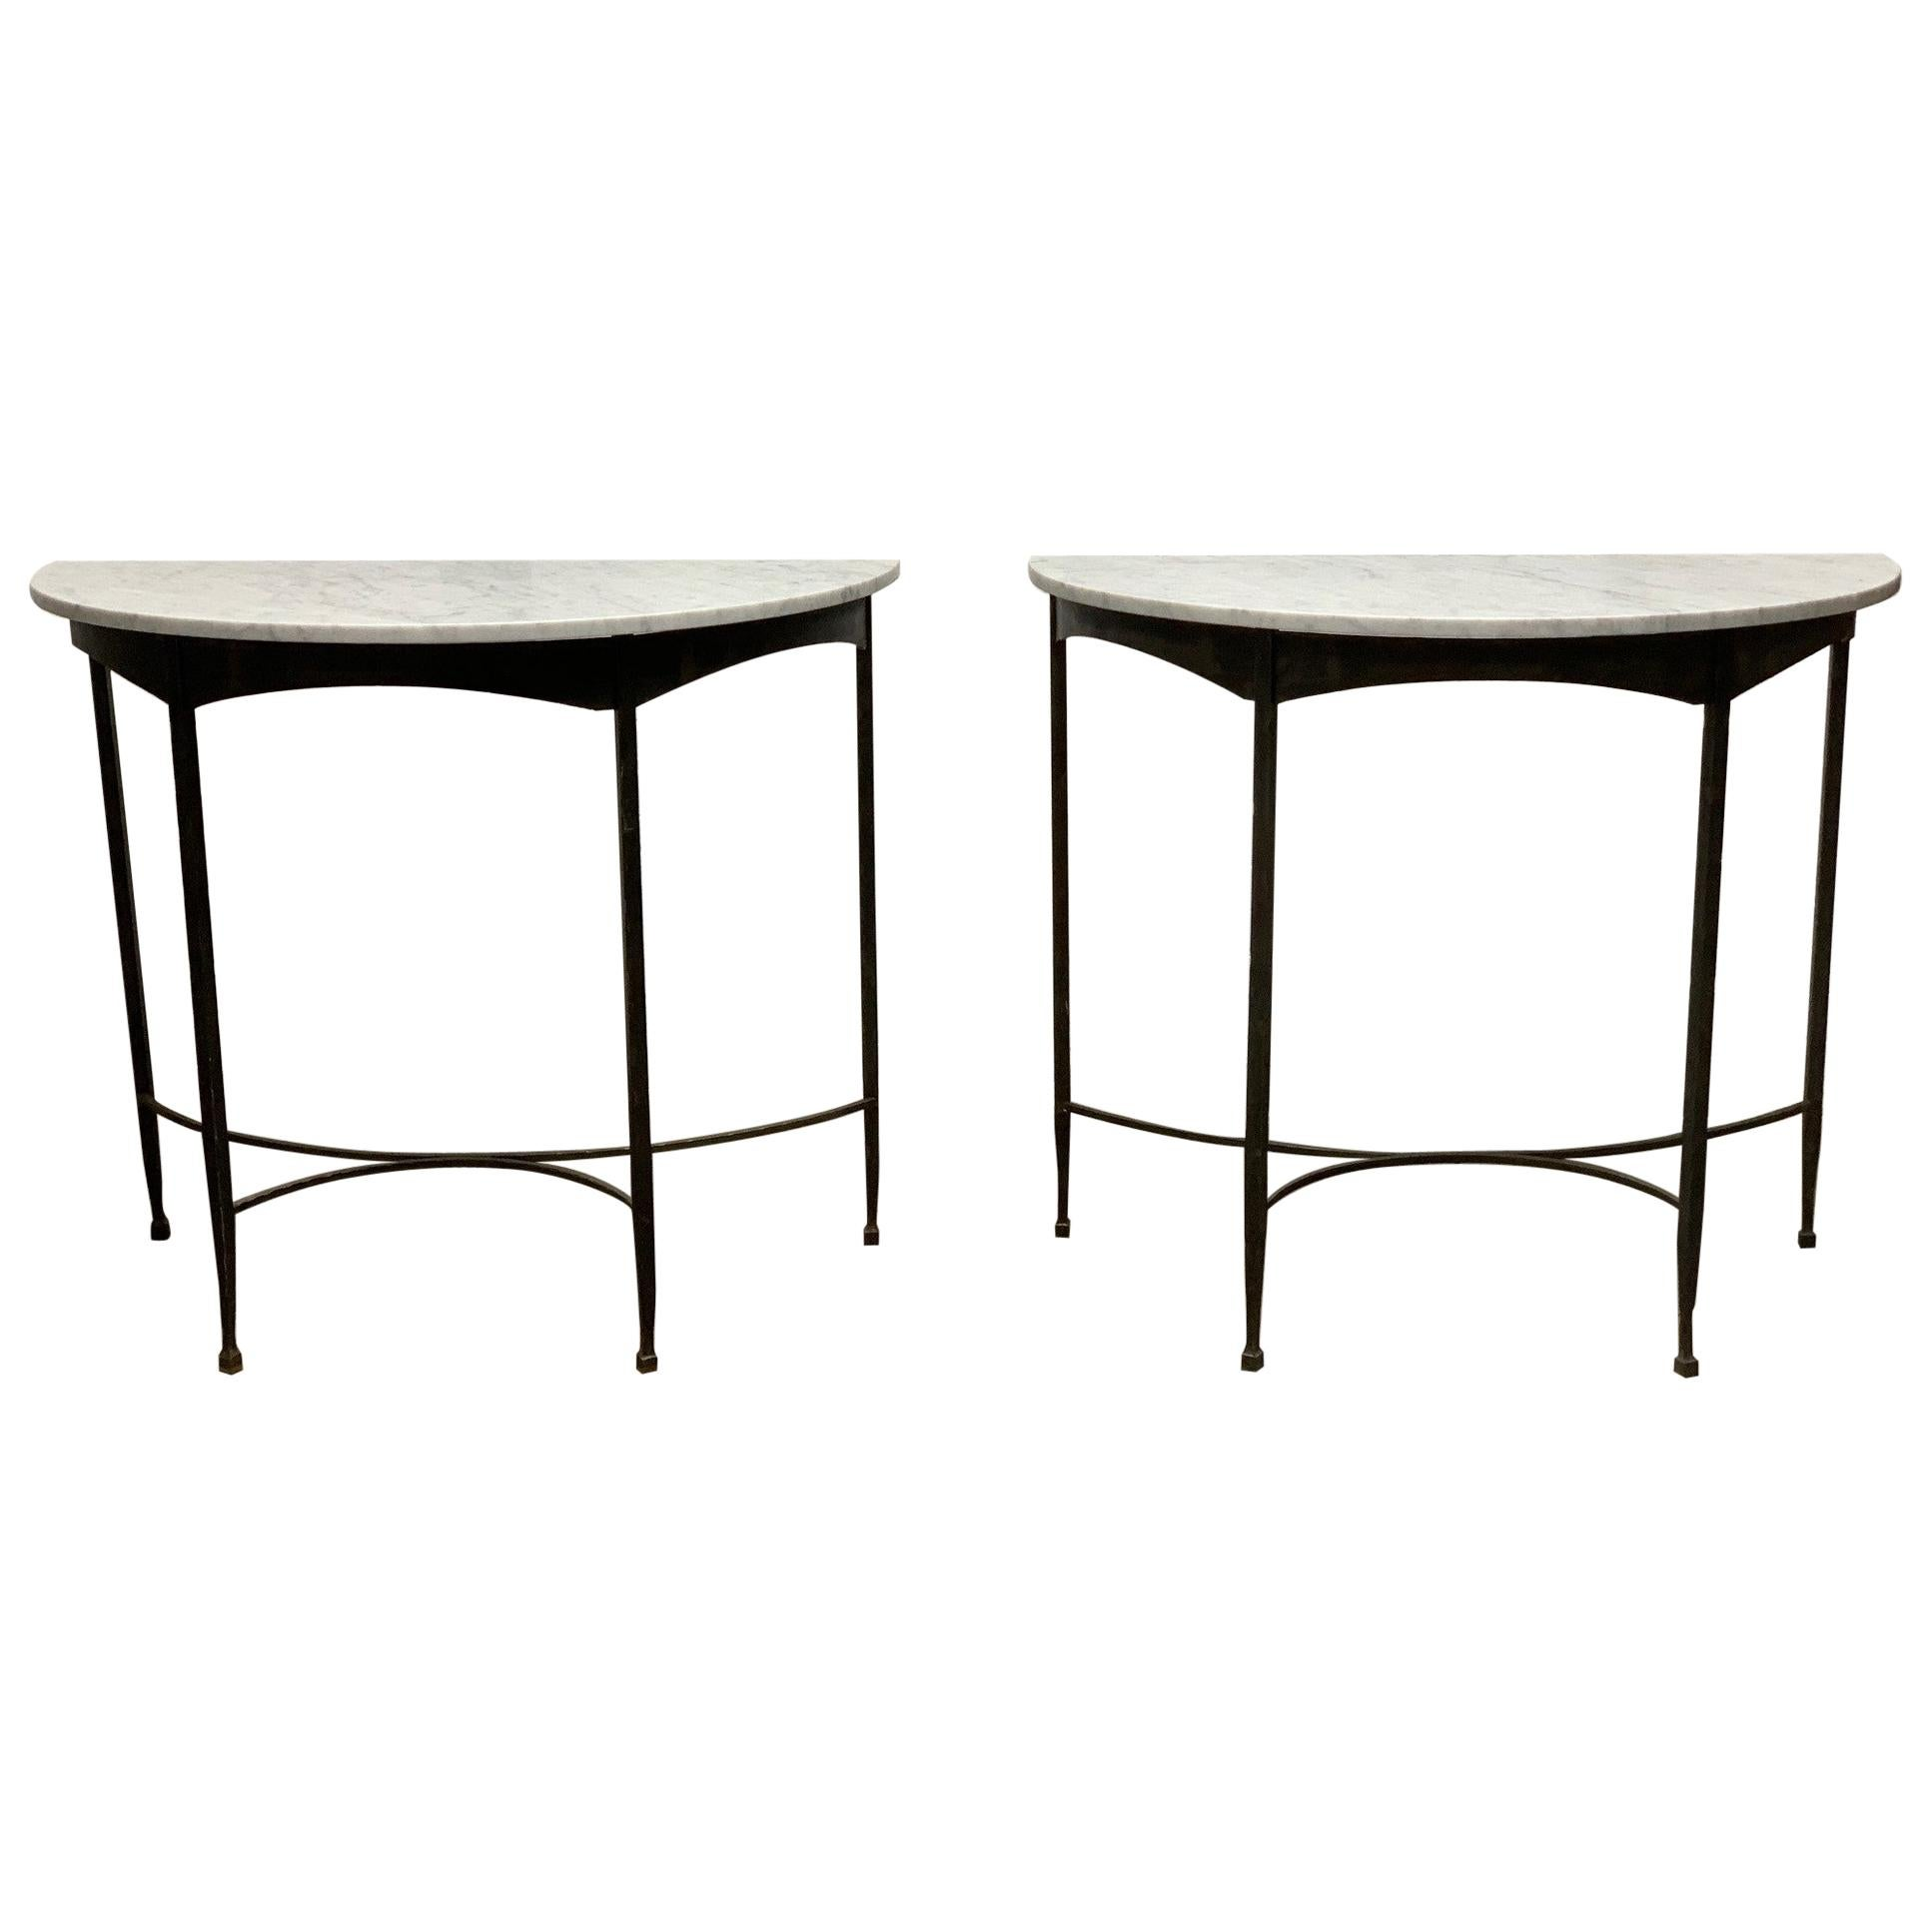 Pair of French Wrought Iron and Carrara Marble-Top Demilune Tables